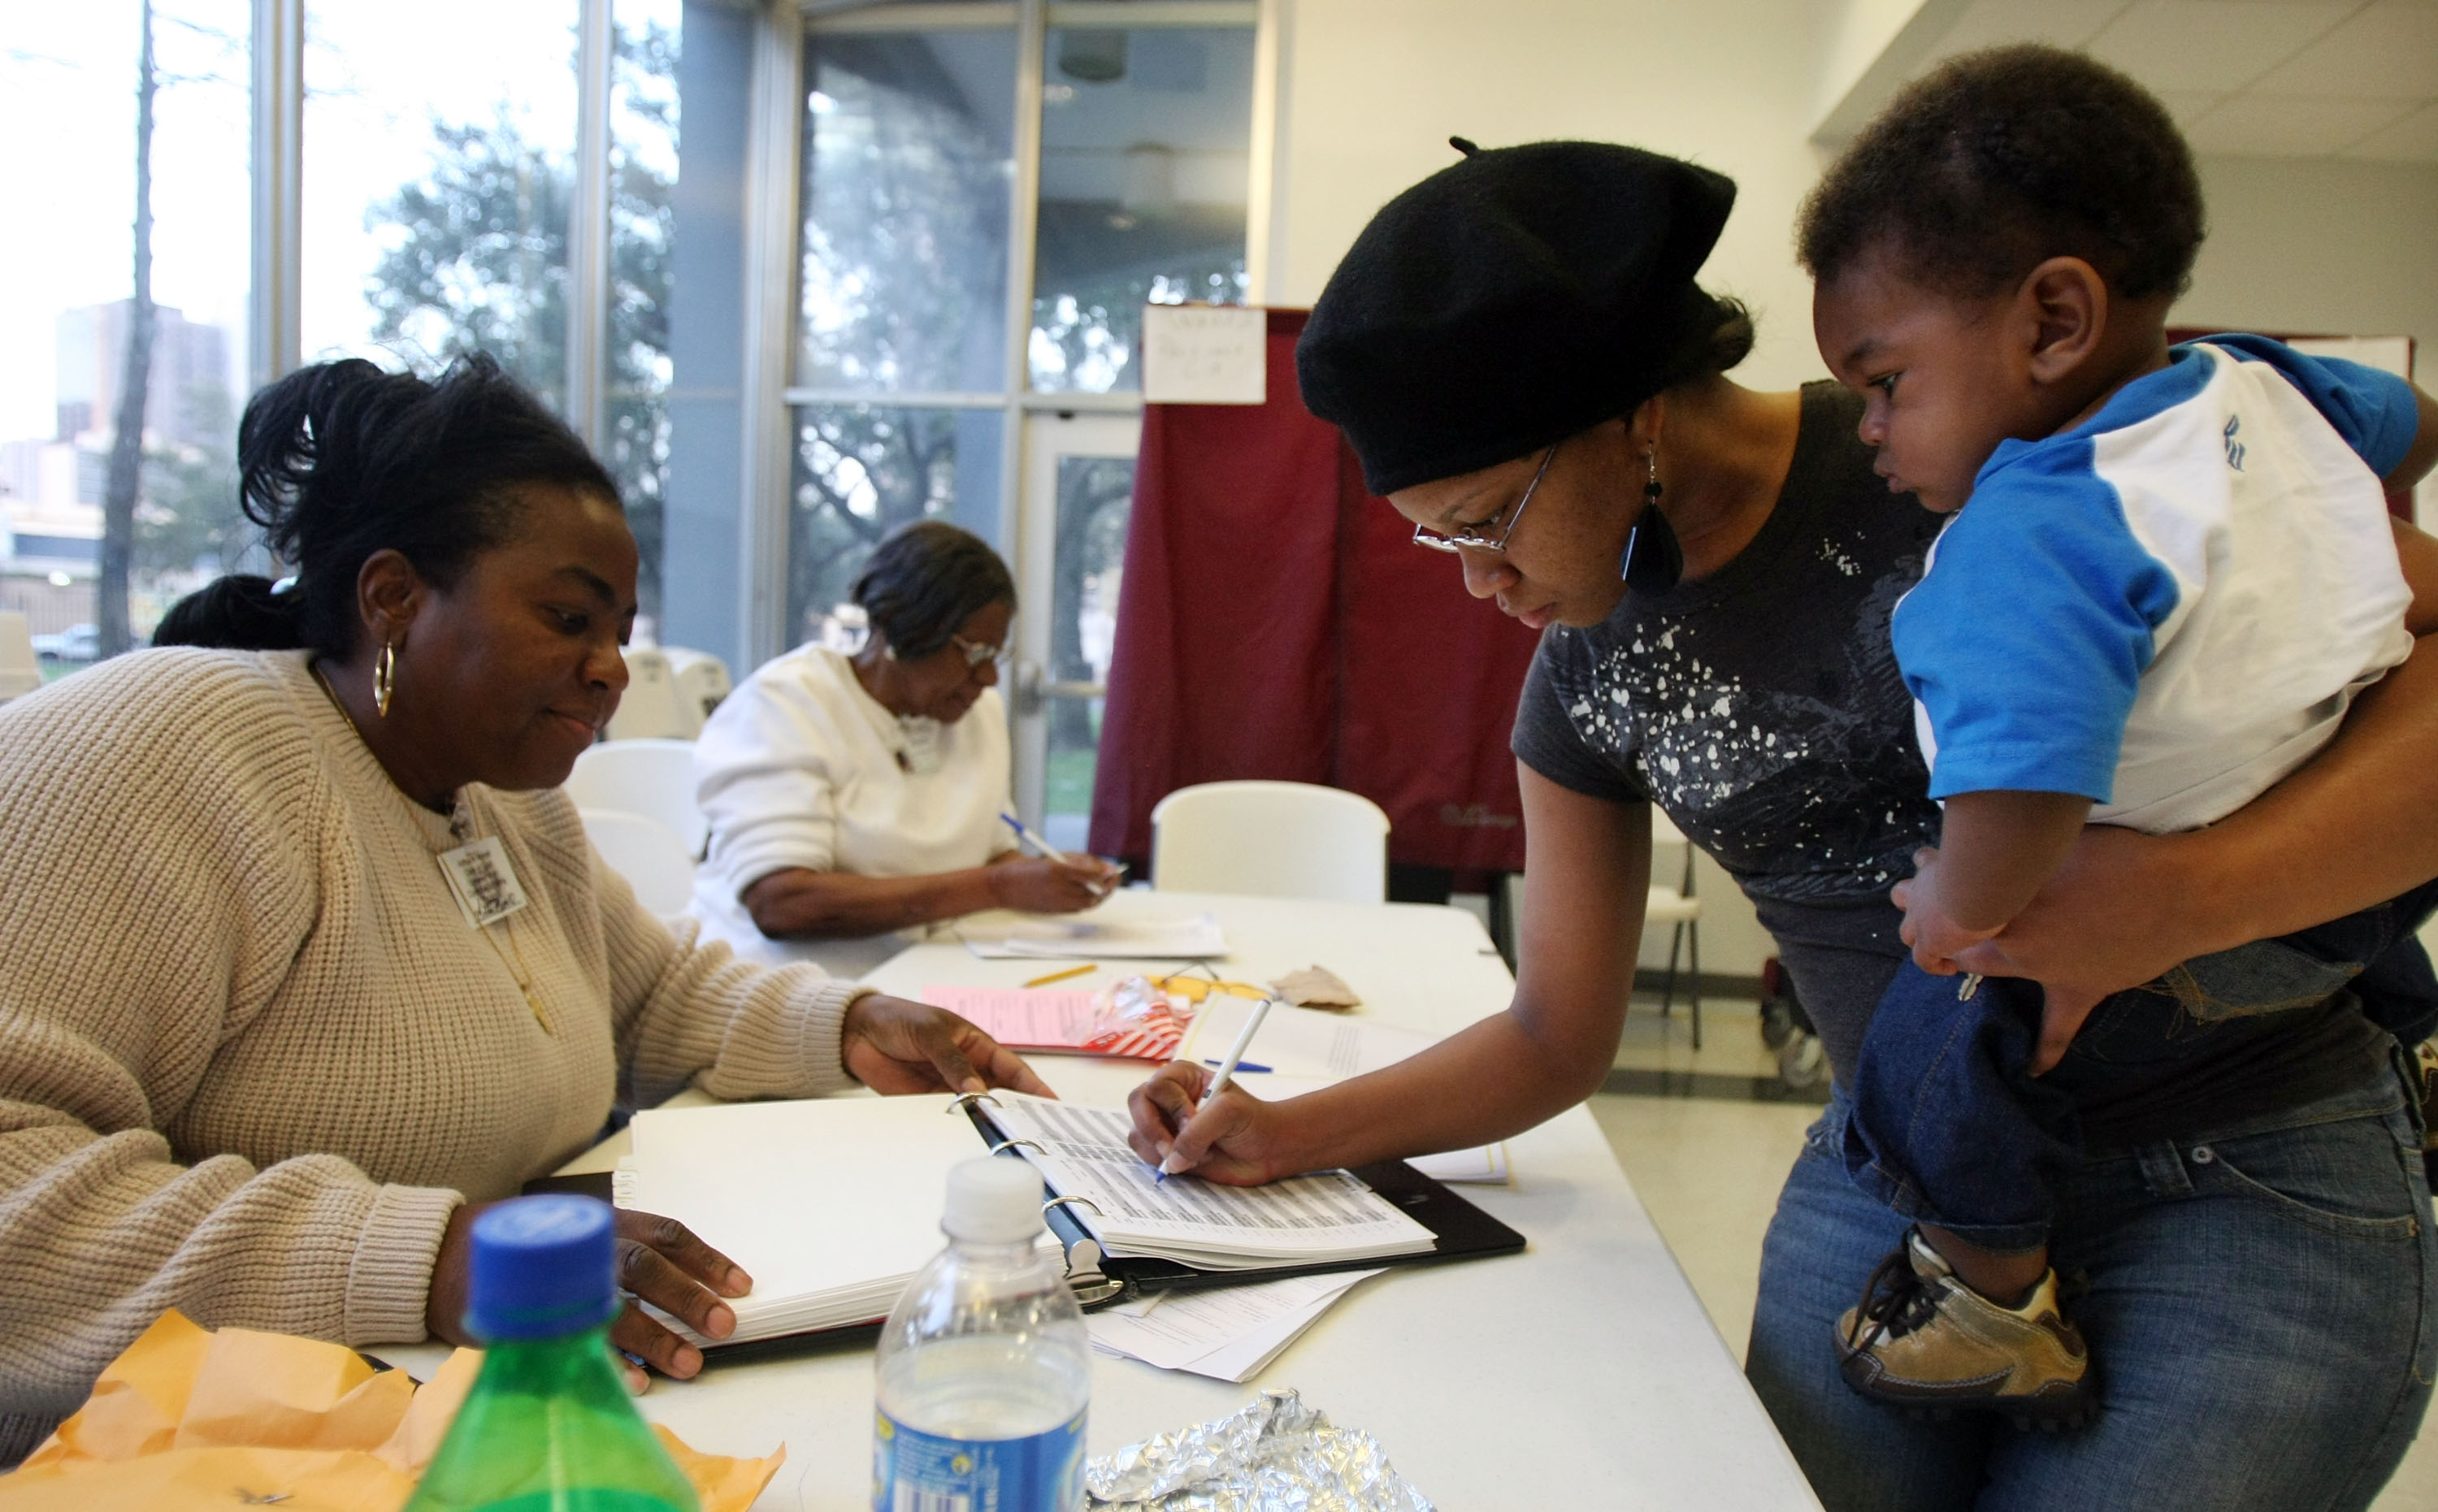 Louisiana Voters Go To The Polls For State's Primary